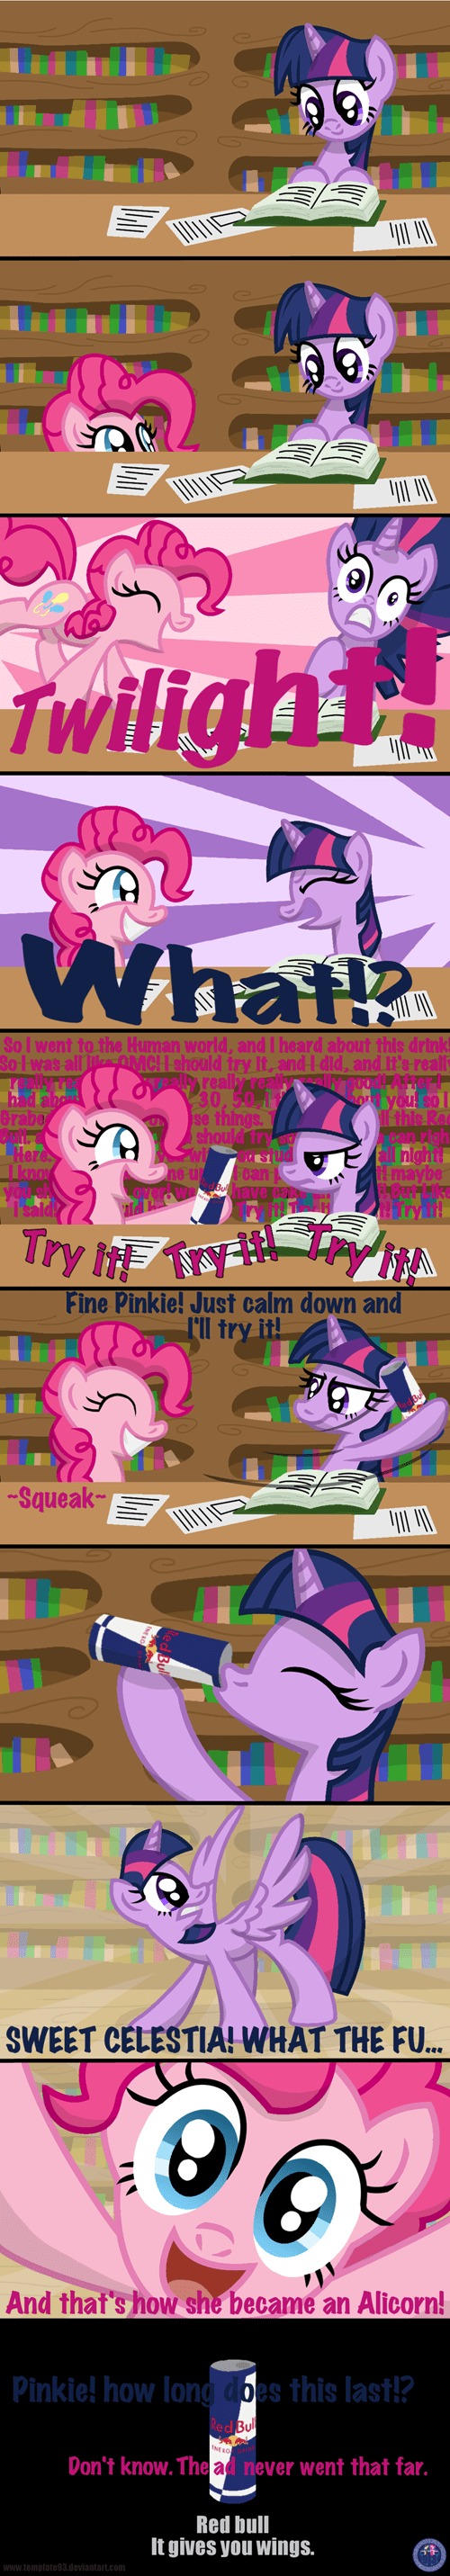 alicorn,red bull,comics,princess twilight